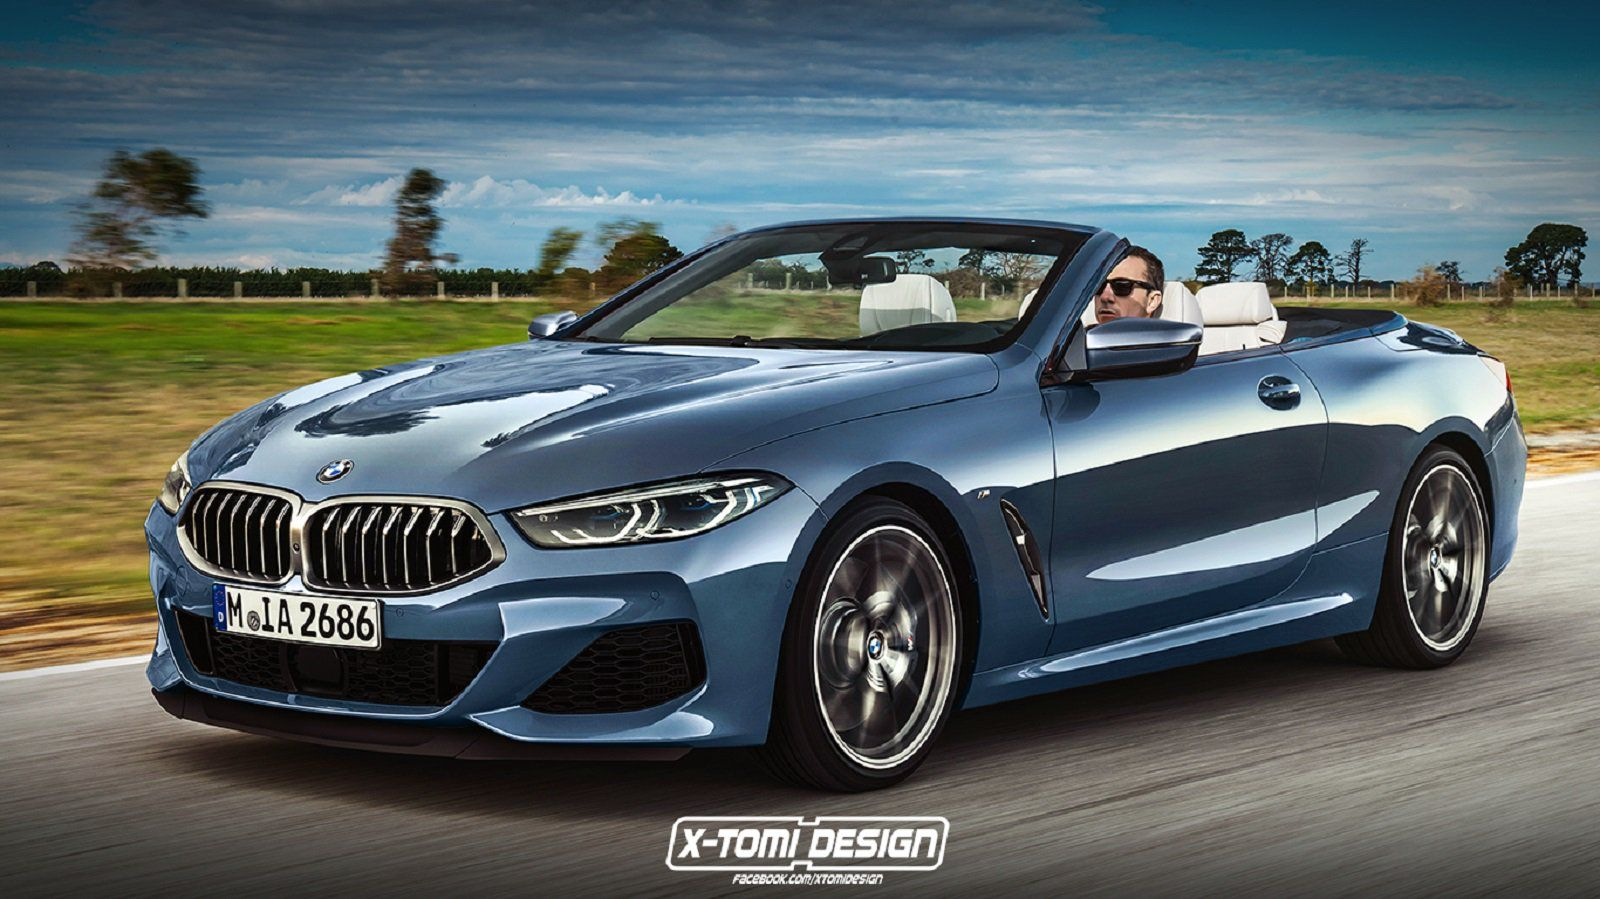 2020 Bmw 8 Series Convertible Bmw Convertible Bmw Bmw Cars